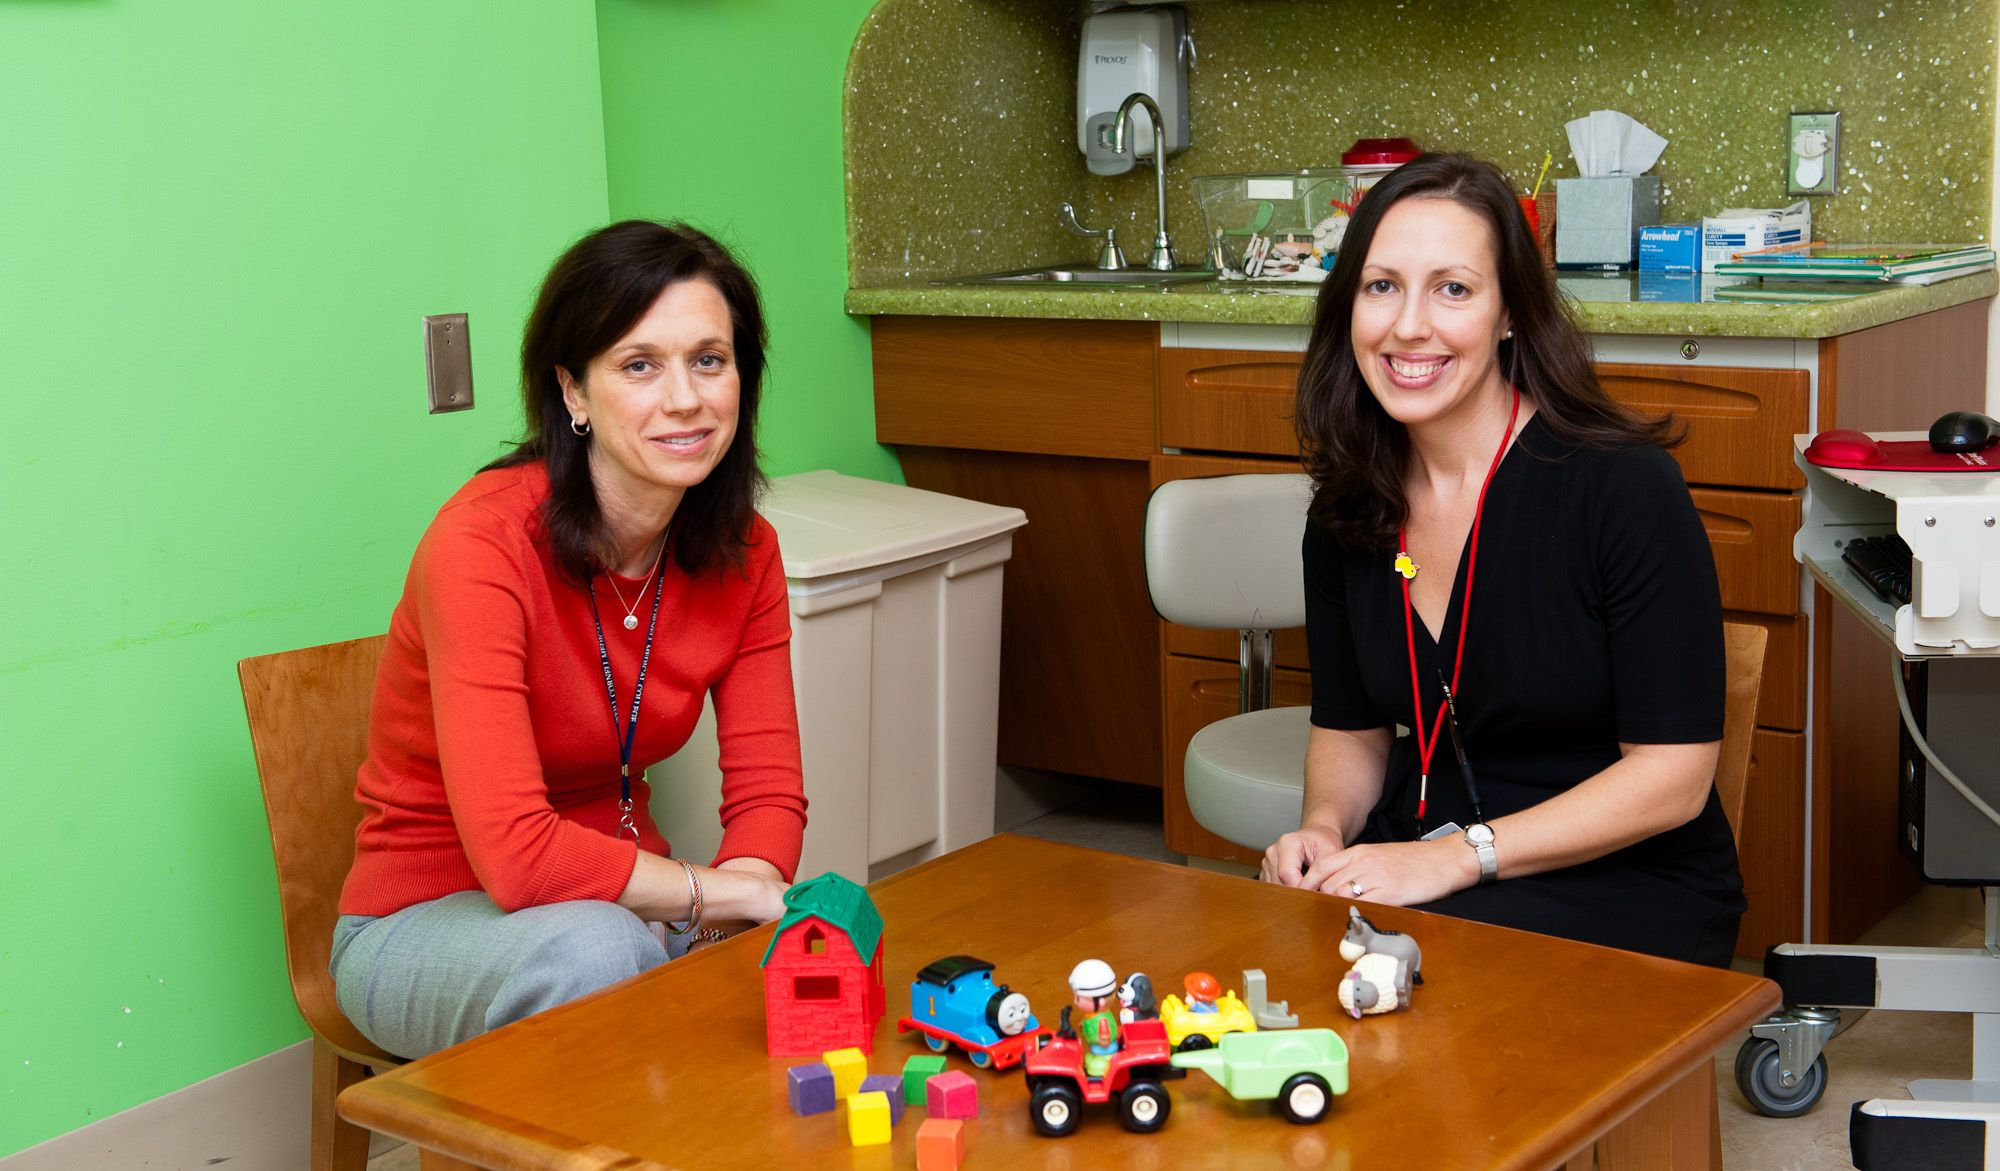 Weill Cornell Child Development Program